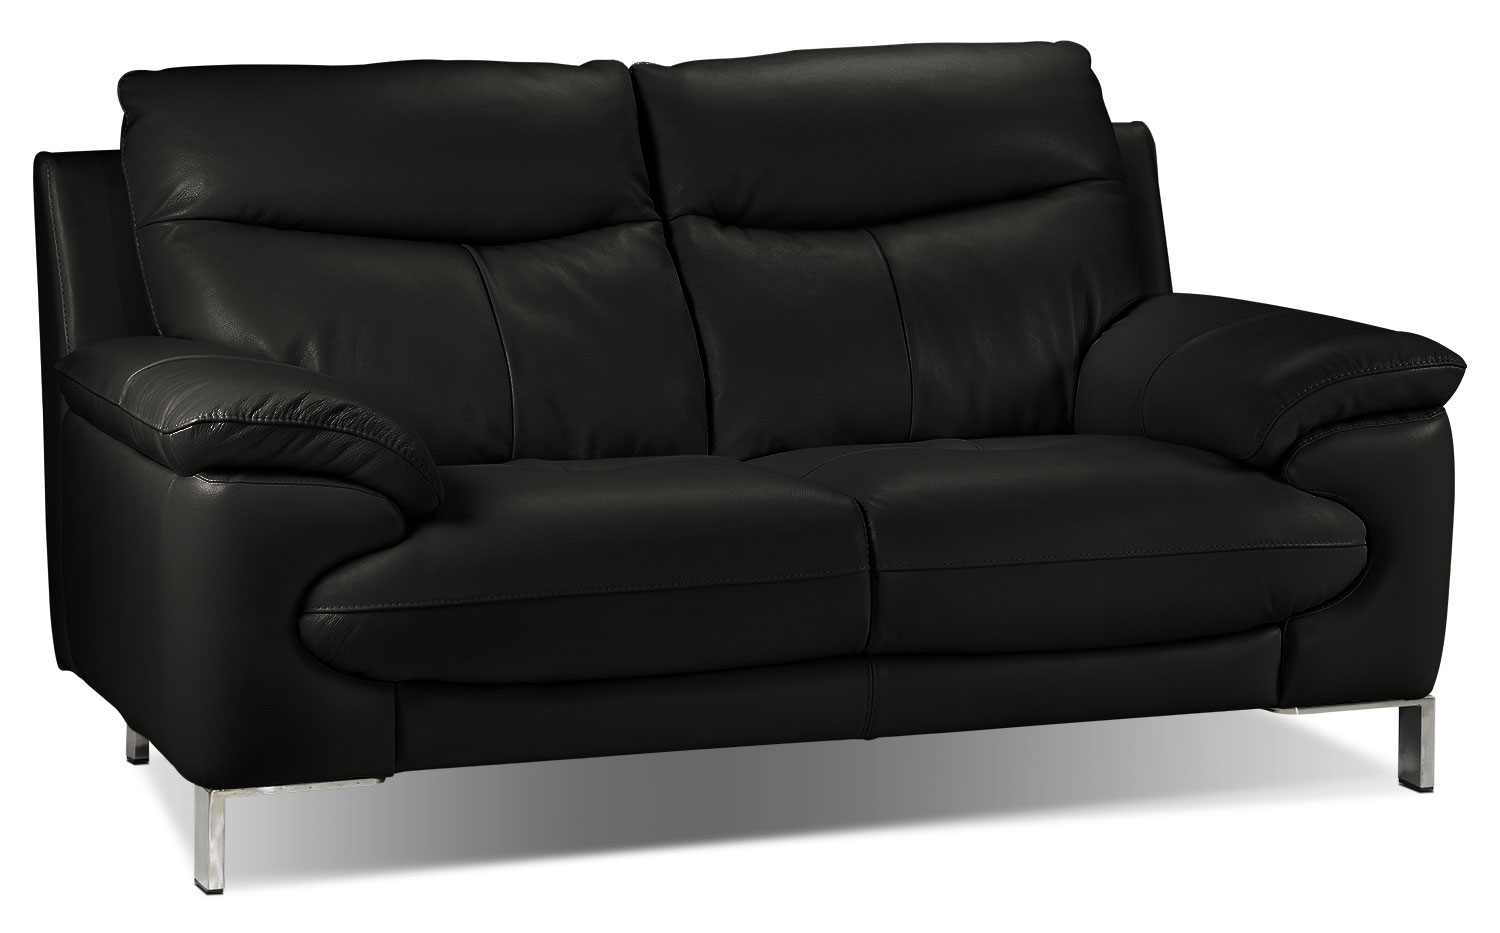 Anika Loveseat - Black